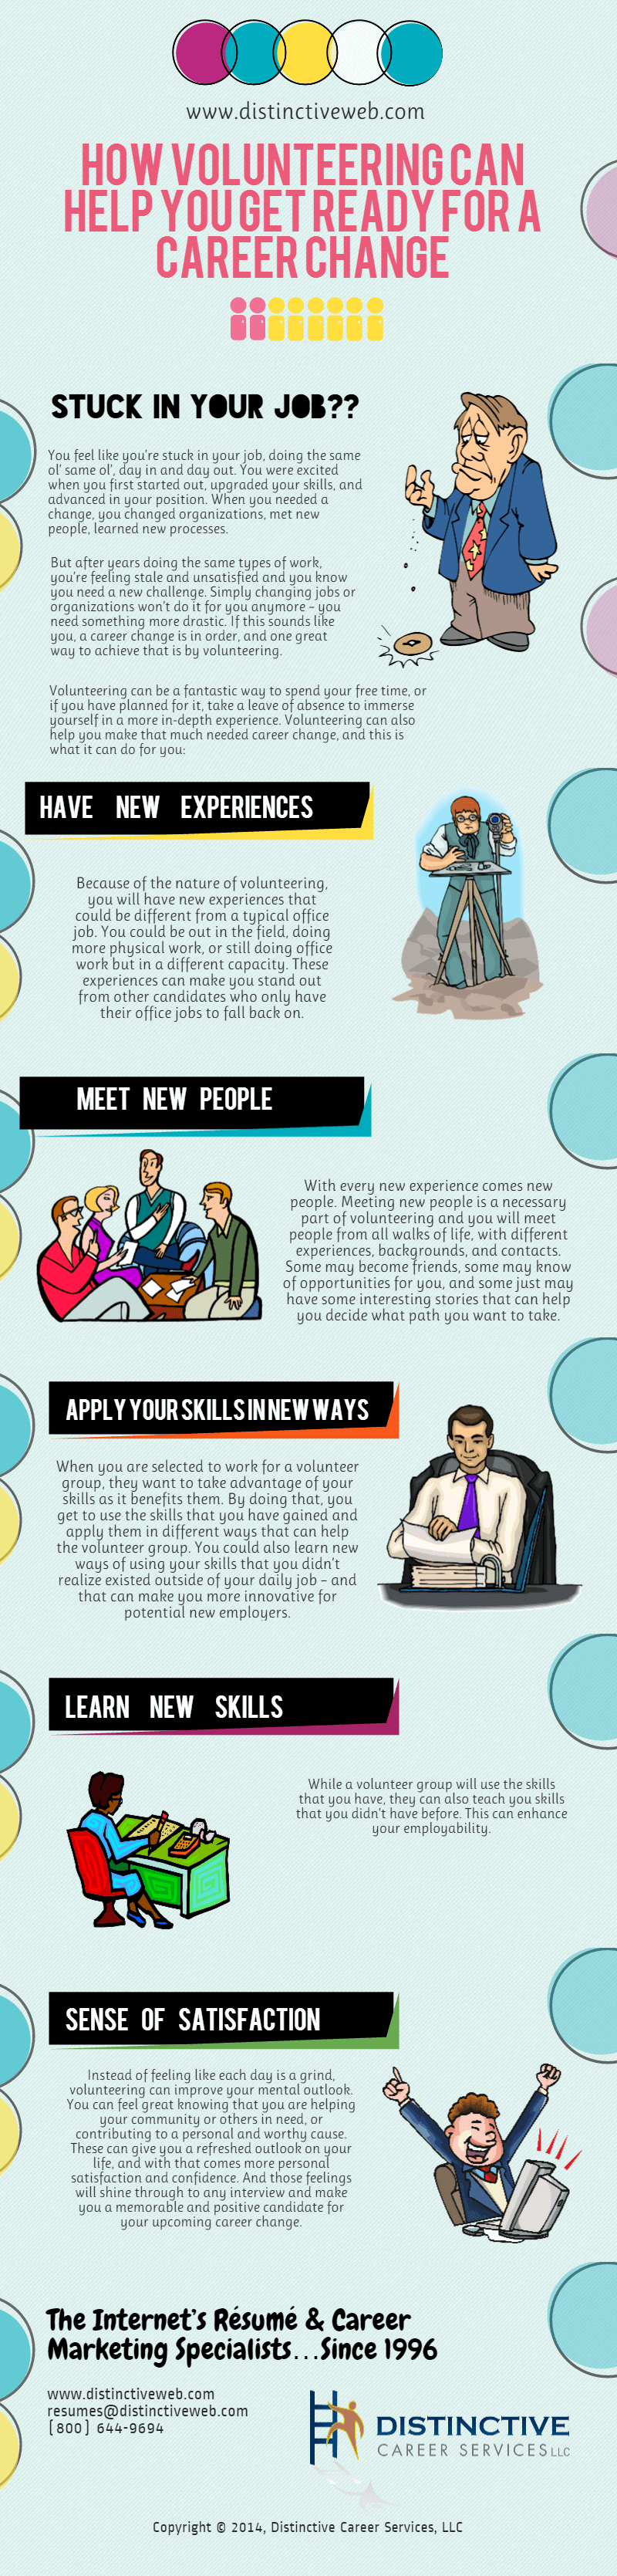 How Volunteering Can Help You Get Ready For A Career Change